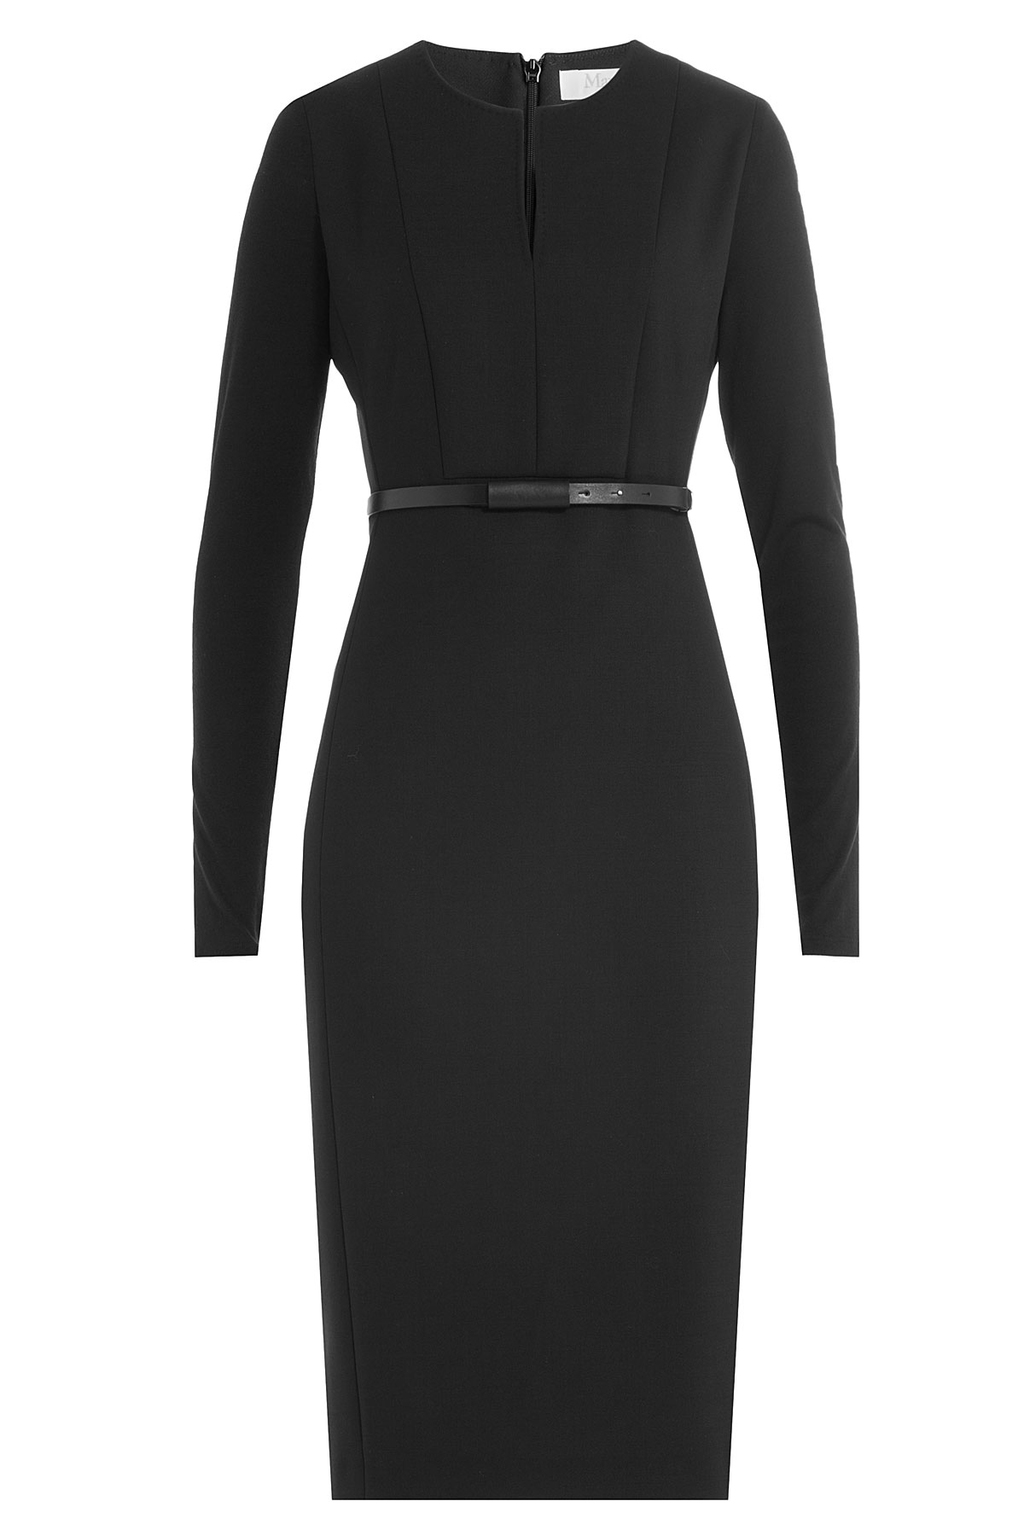 Virgin Wool Dress With Belt - style: shift; neckline: v-neck; fit: tailored/fitted; pattern: plain; predominant colour: black; occasions: evening; length: on the knee; fibres: wool - stretch; sleeve length: long sleeve; sleeve style: standard; pattern type: fabric; texture group: woven light midweight; season: a/w 2016; wardrobe: event